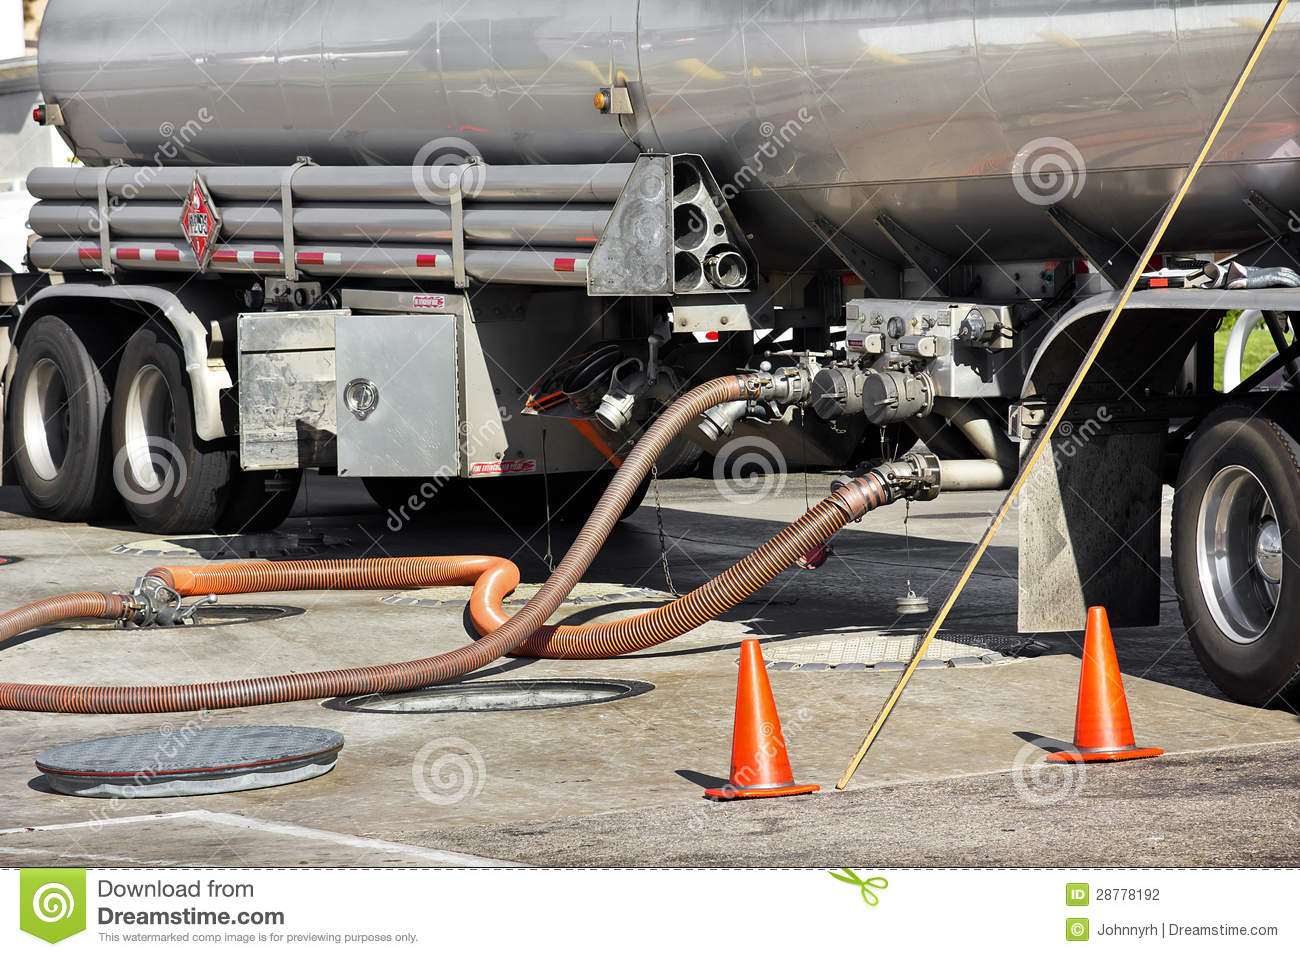 Fully Automated Disposal besides Using Alt Control Circuit 1 6 Vvt Swap Wiring 73417 additionally Stock Photography Fuel Tanker Deposits Gasoline Image28778192 in addition Watch likewise Vp44 Vw Audi Solenoid 12529. on fuel pump connections